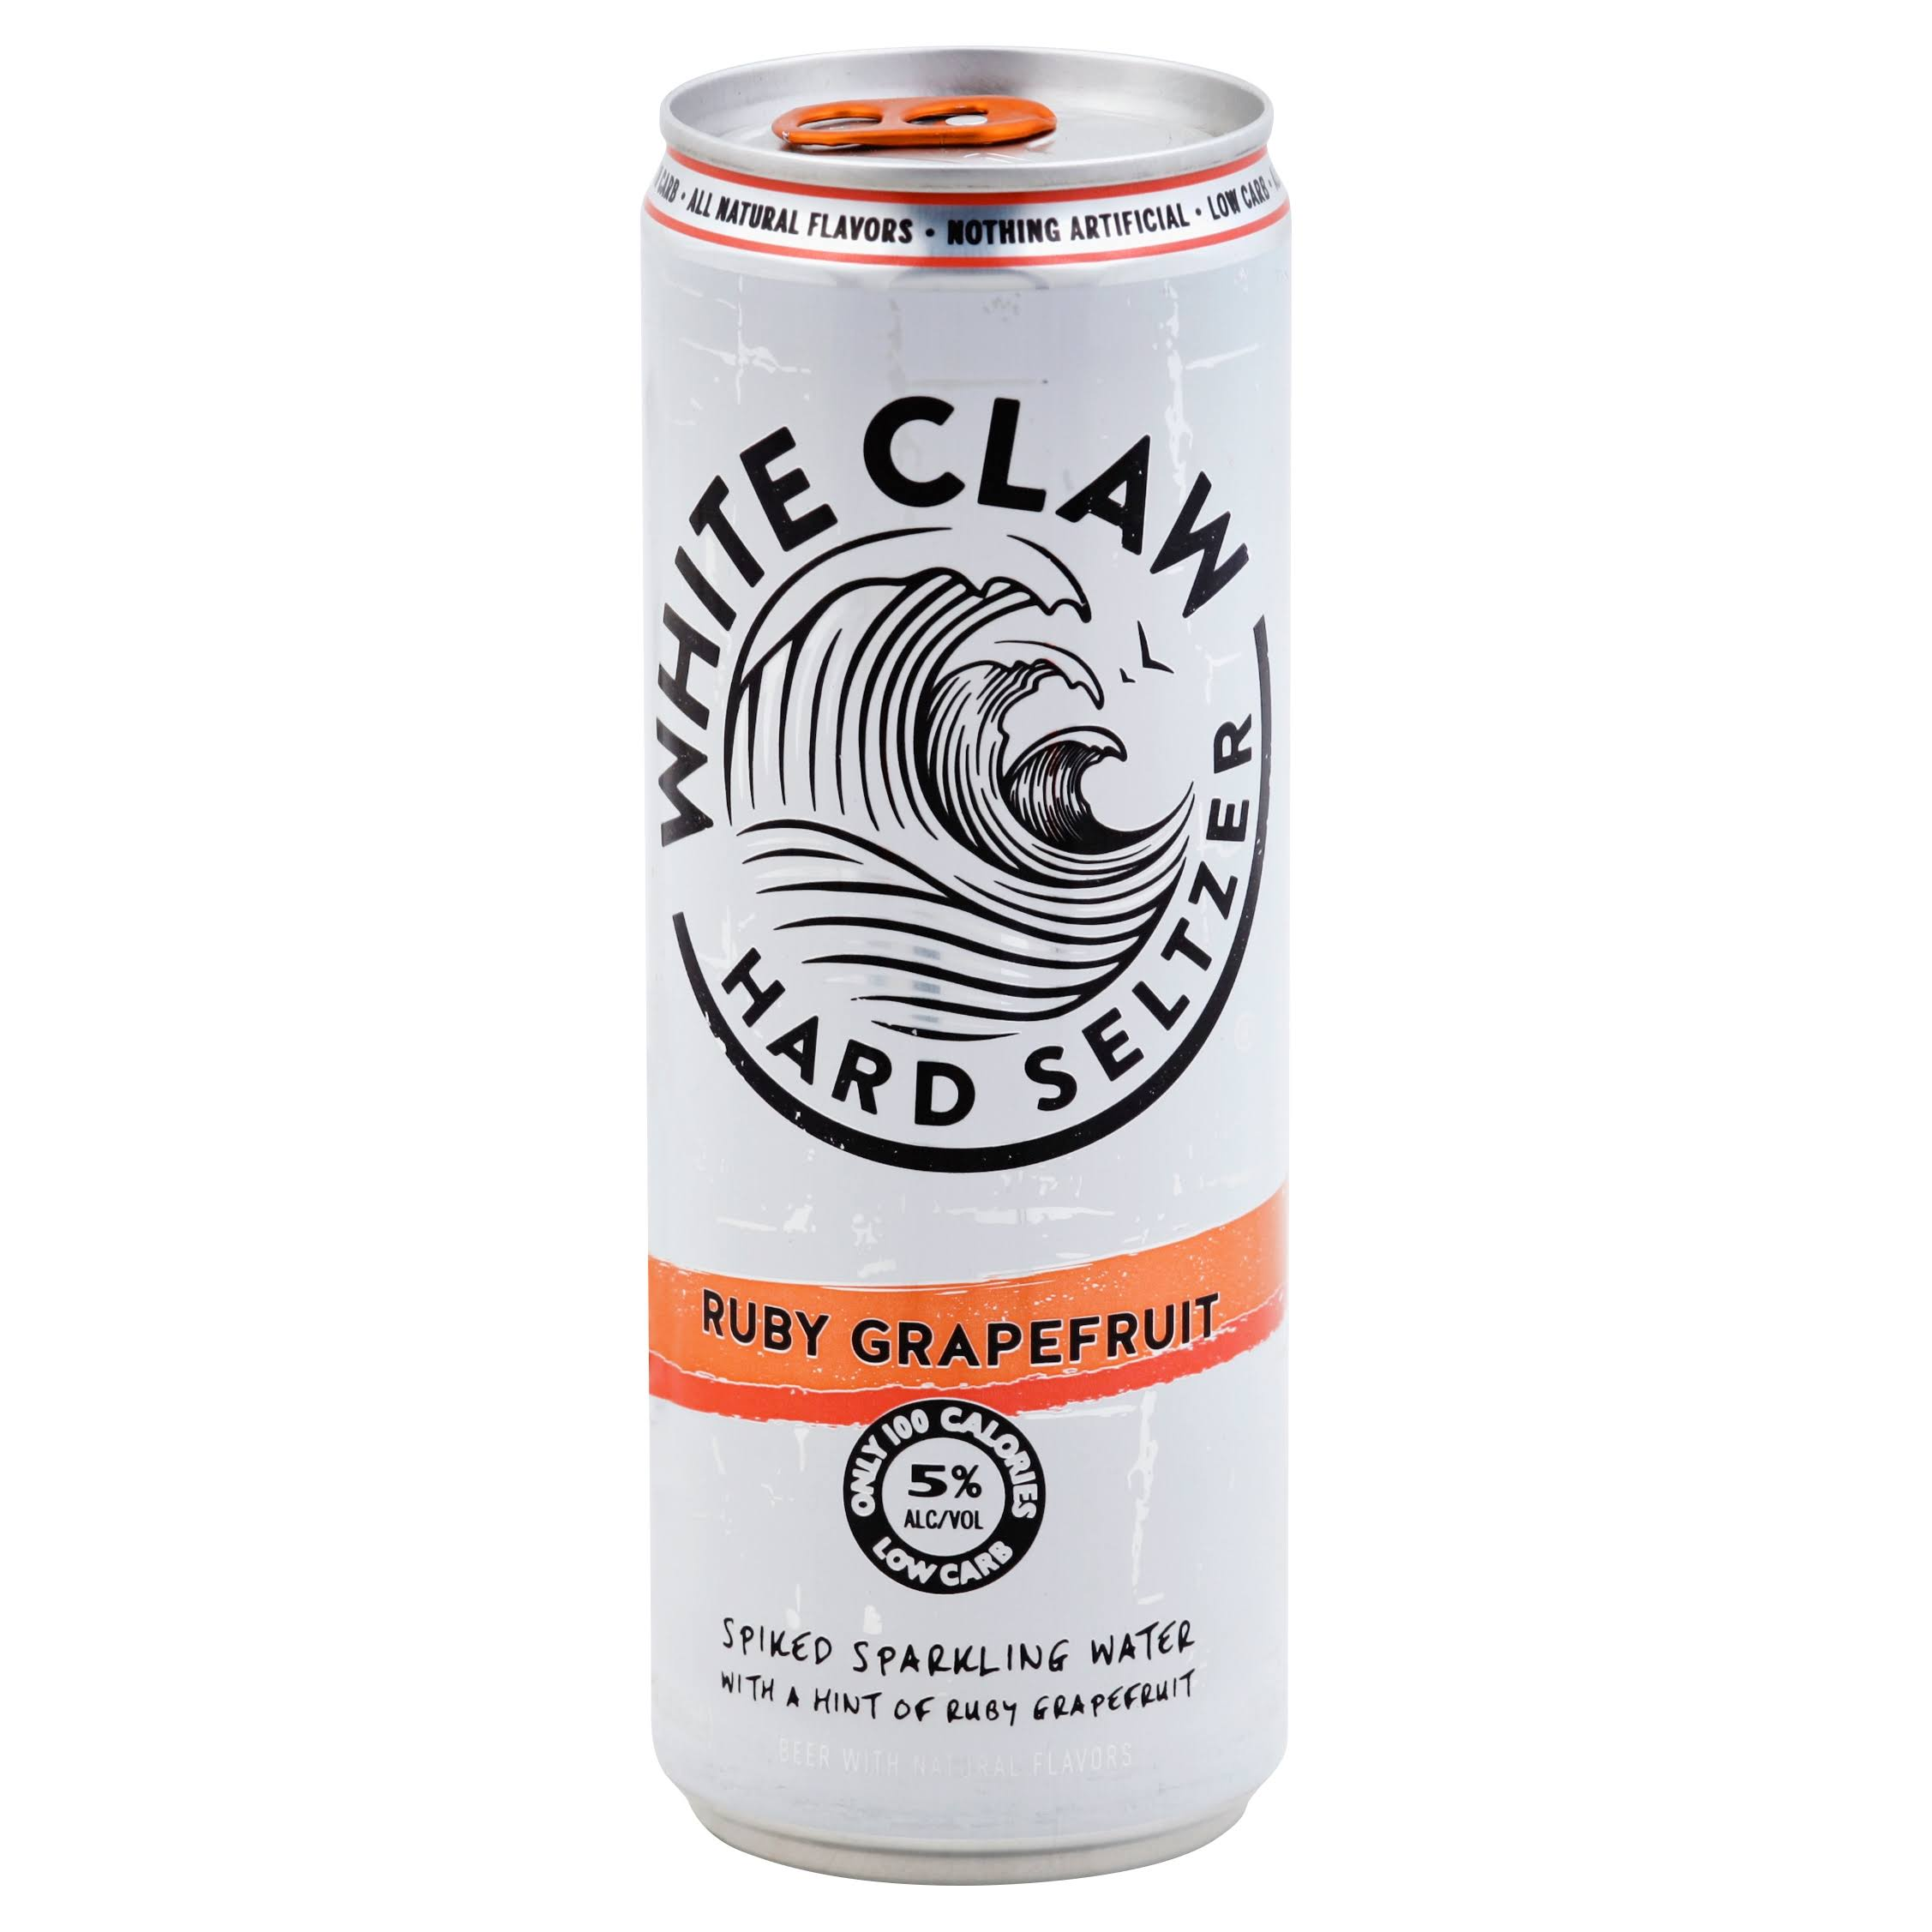 White Claw Hard Seltzer, Ruby Grapefruit - 12 fl oz